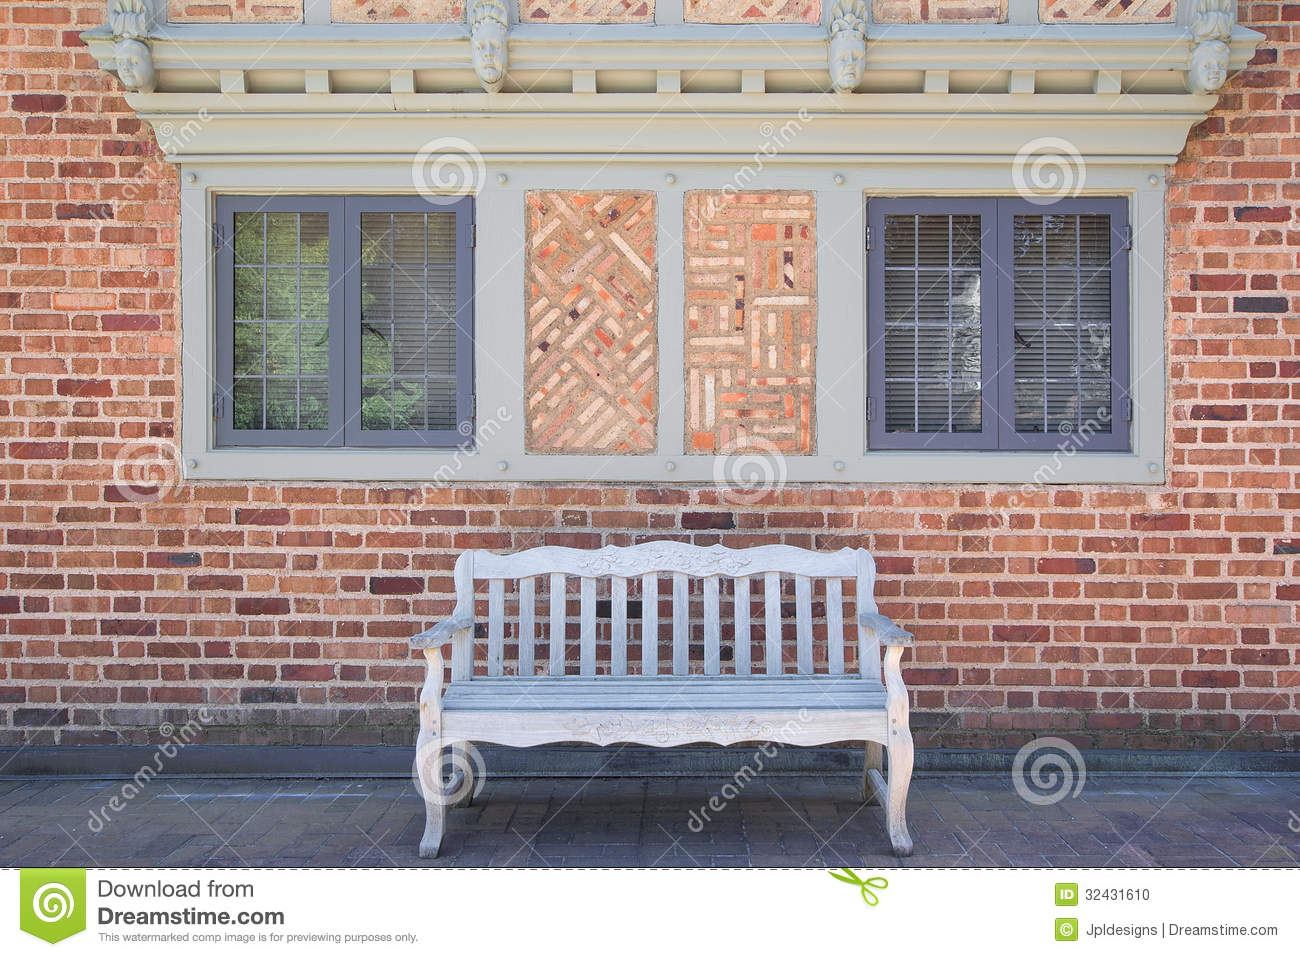 House brick exterior with wood bench stock photo image for Brick house exterior design